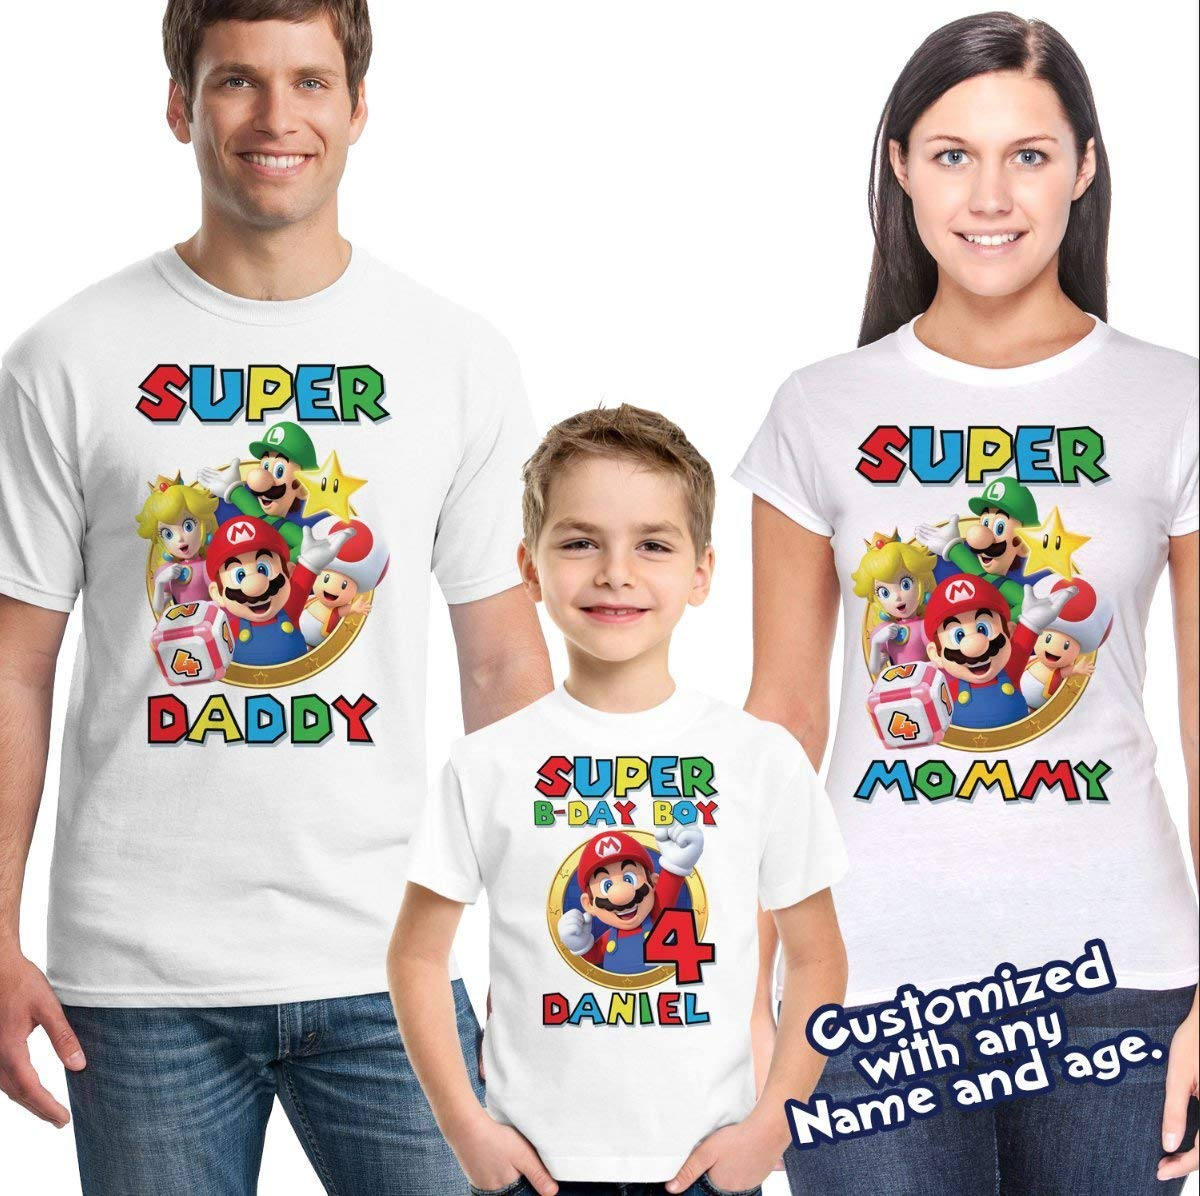 Super Mario birthday shirt with name and age, Super Mario Family Birthday shirts